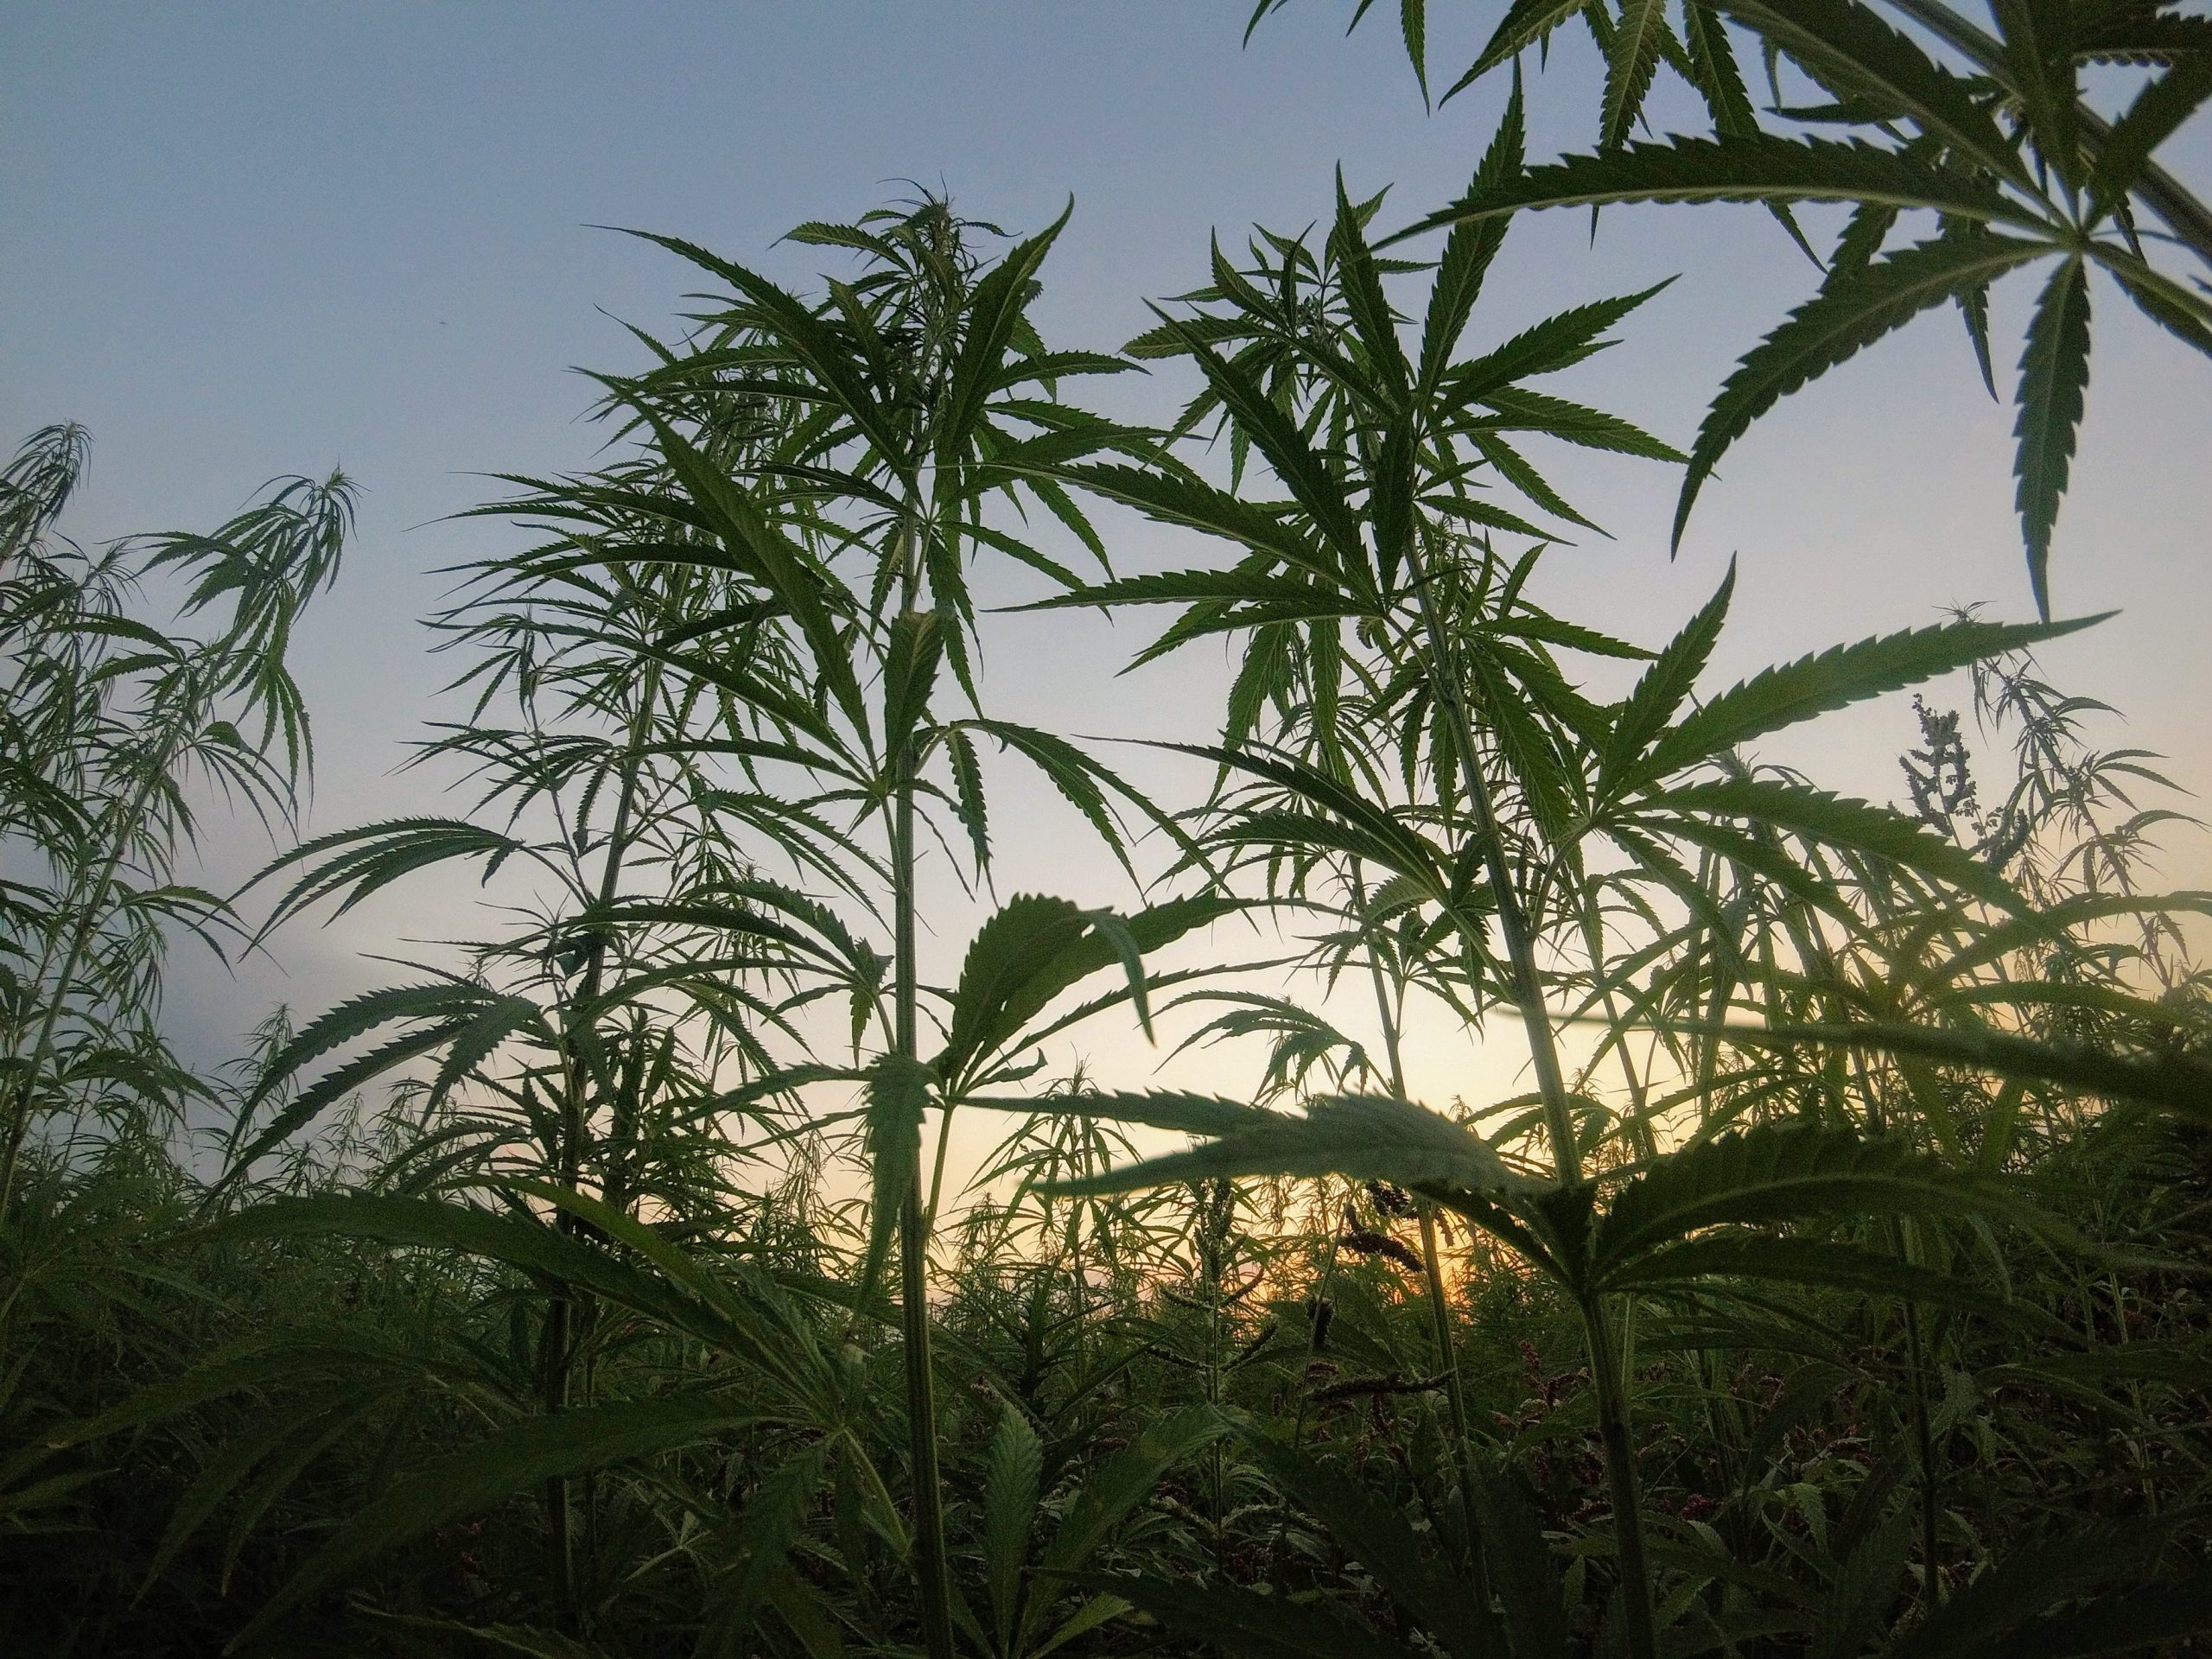 French energy firm will invest $23 million in hemp-fueled gas plant